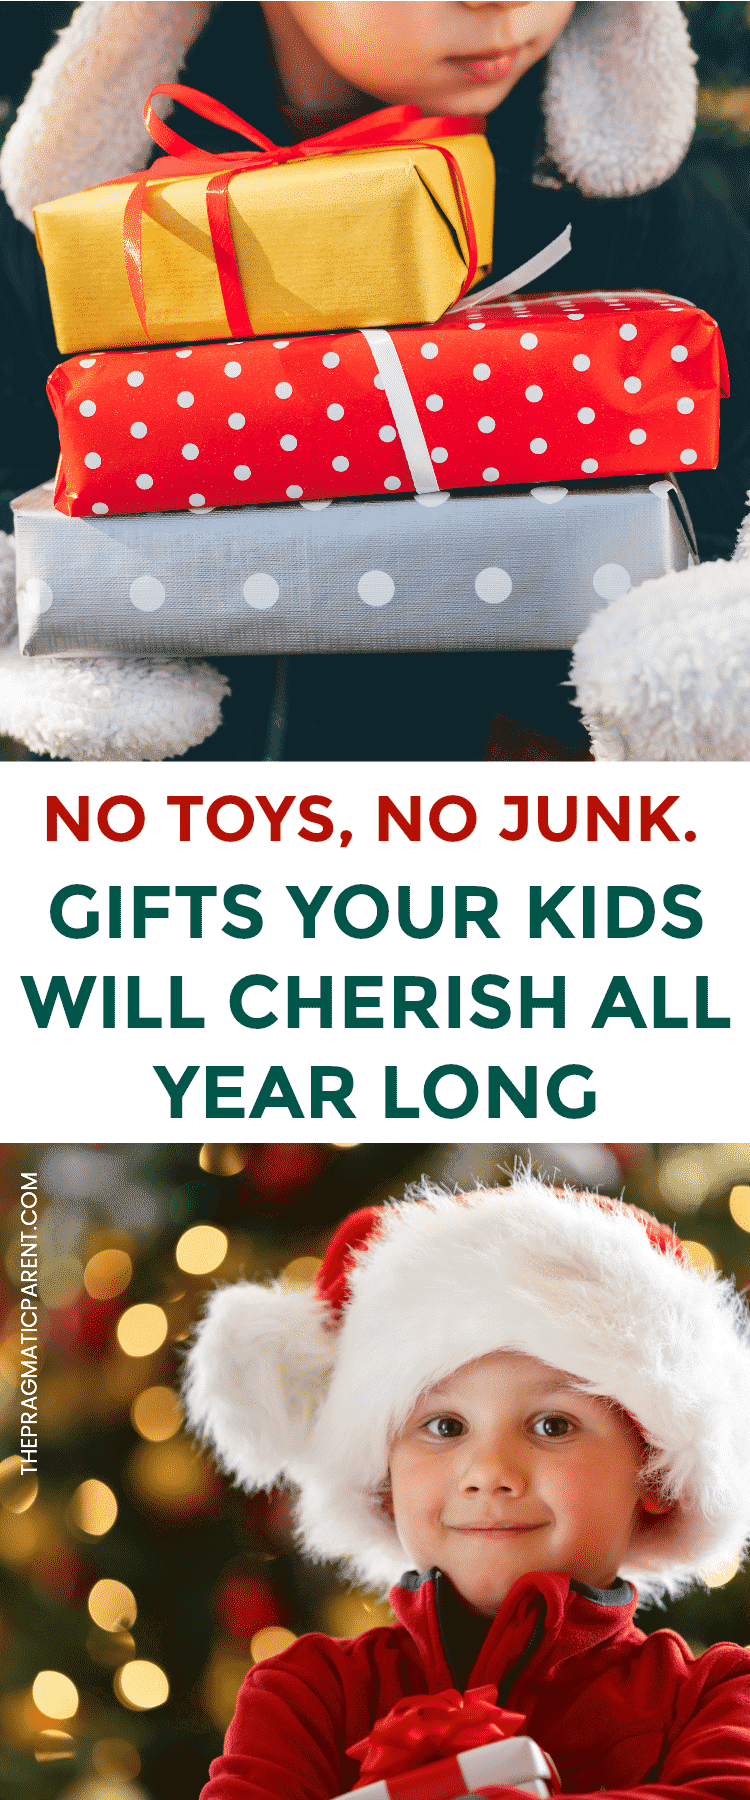 Meaningful Kid's Gifts. Meaningful Non-Toy Gifts Kids Will Cherish All Year Long. Subscription Box Gifts That Bring Joy All Year Long.